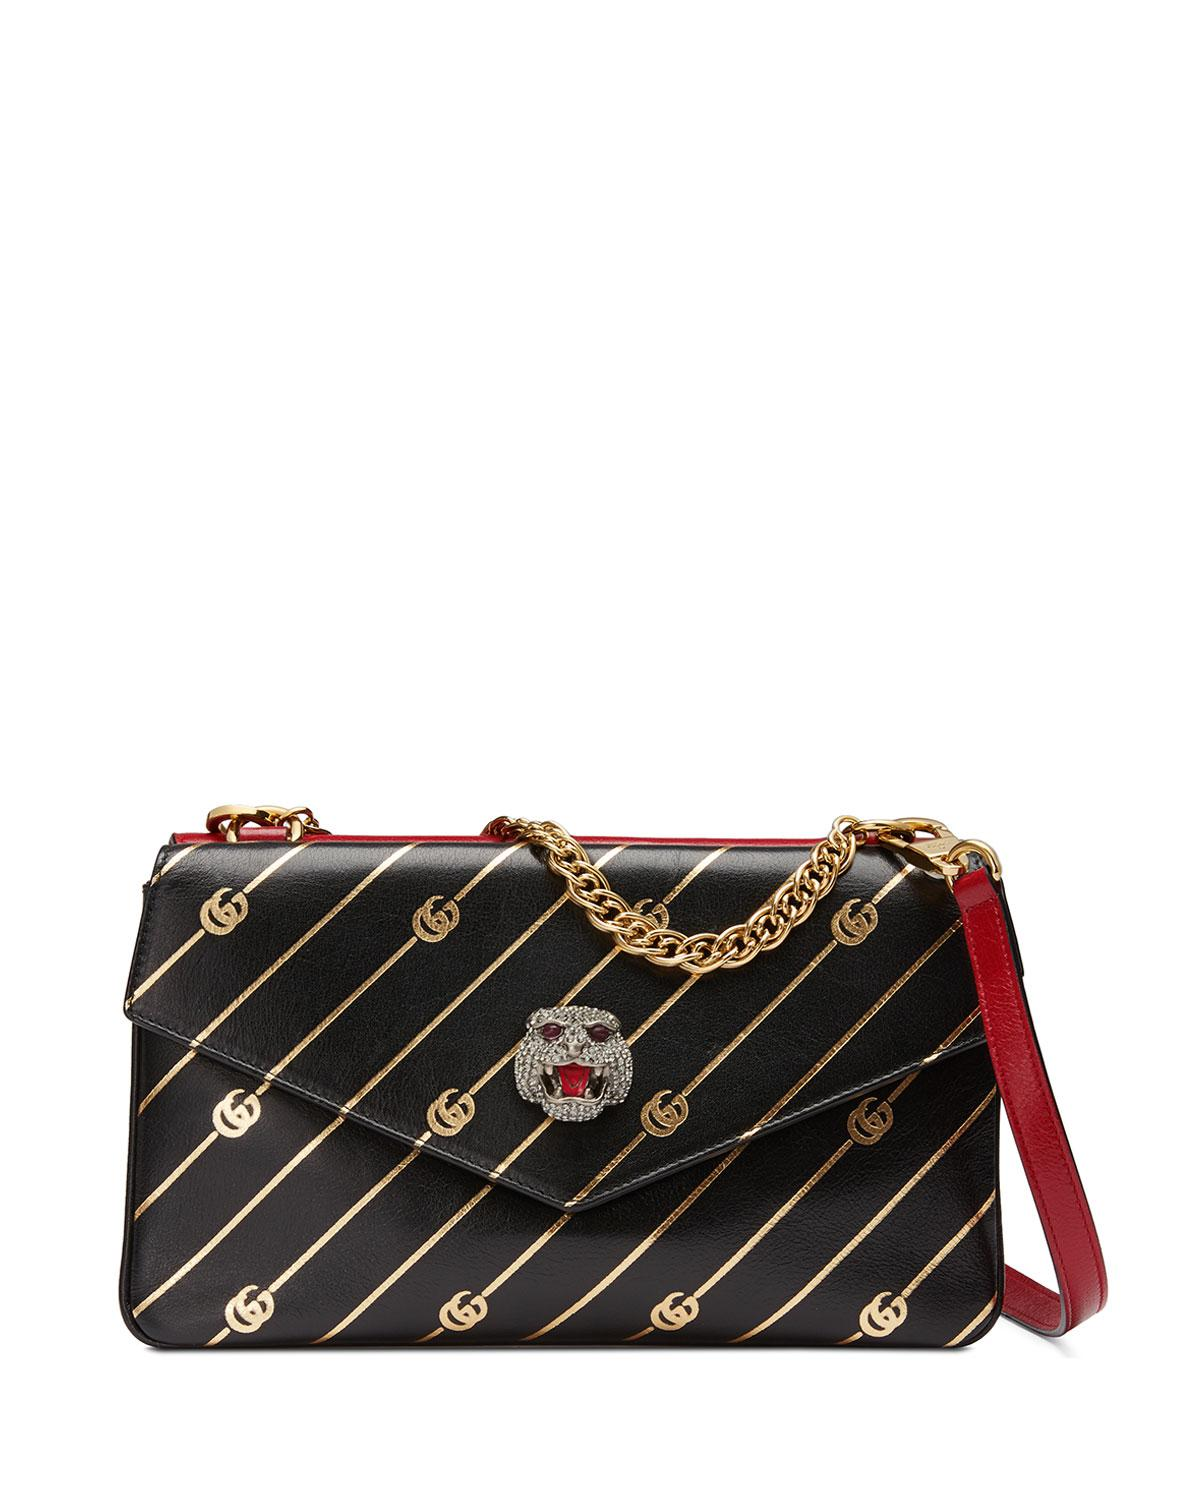 Lyst - Gucci Thiara Medium Leather Double Shoulder Bag in Red c5849e3d0b3a7